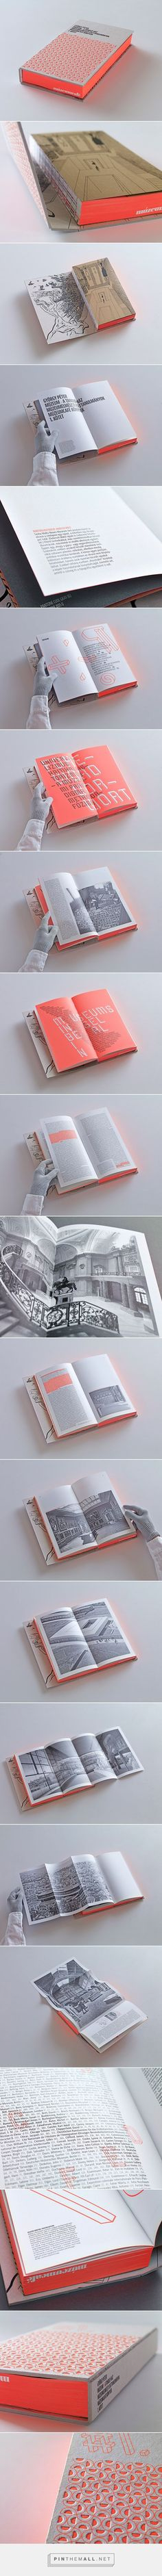 Museum – A House for Learning by Péter György on Behance #BooksBinding